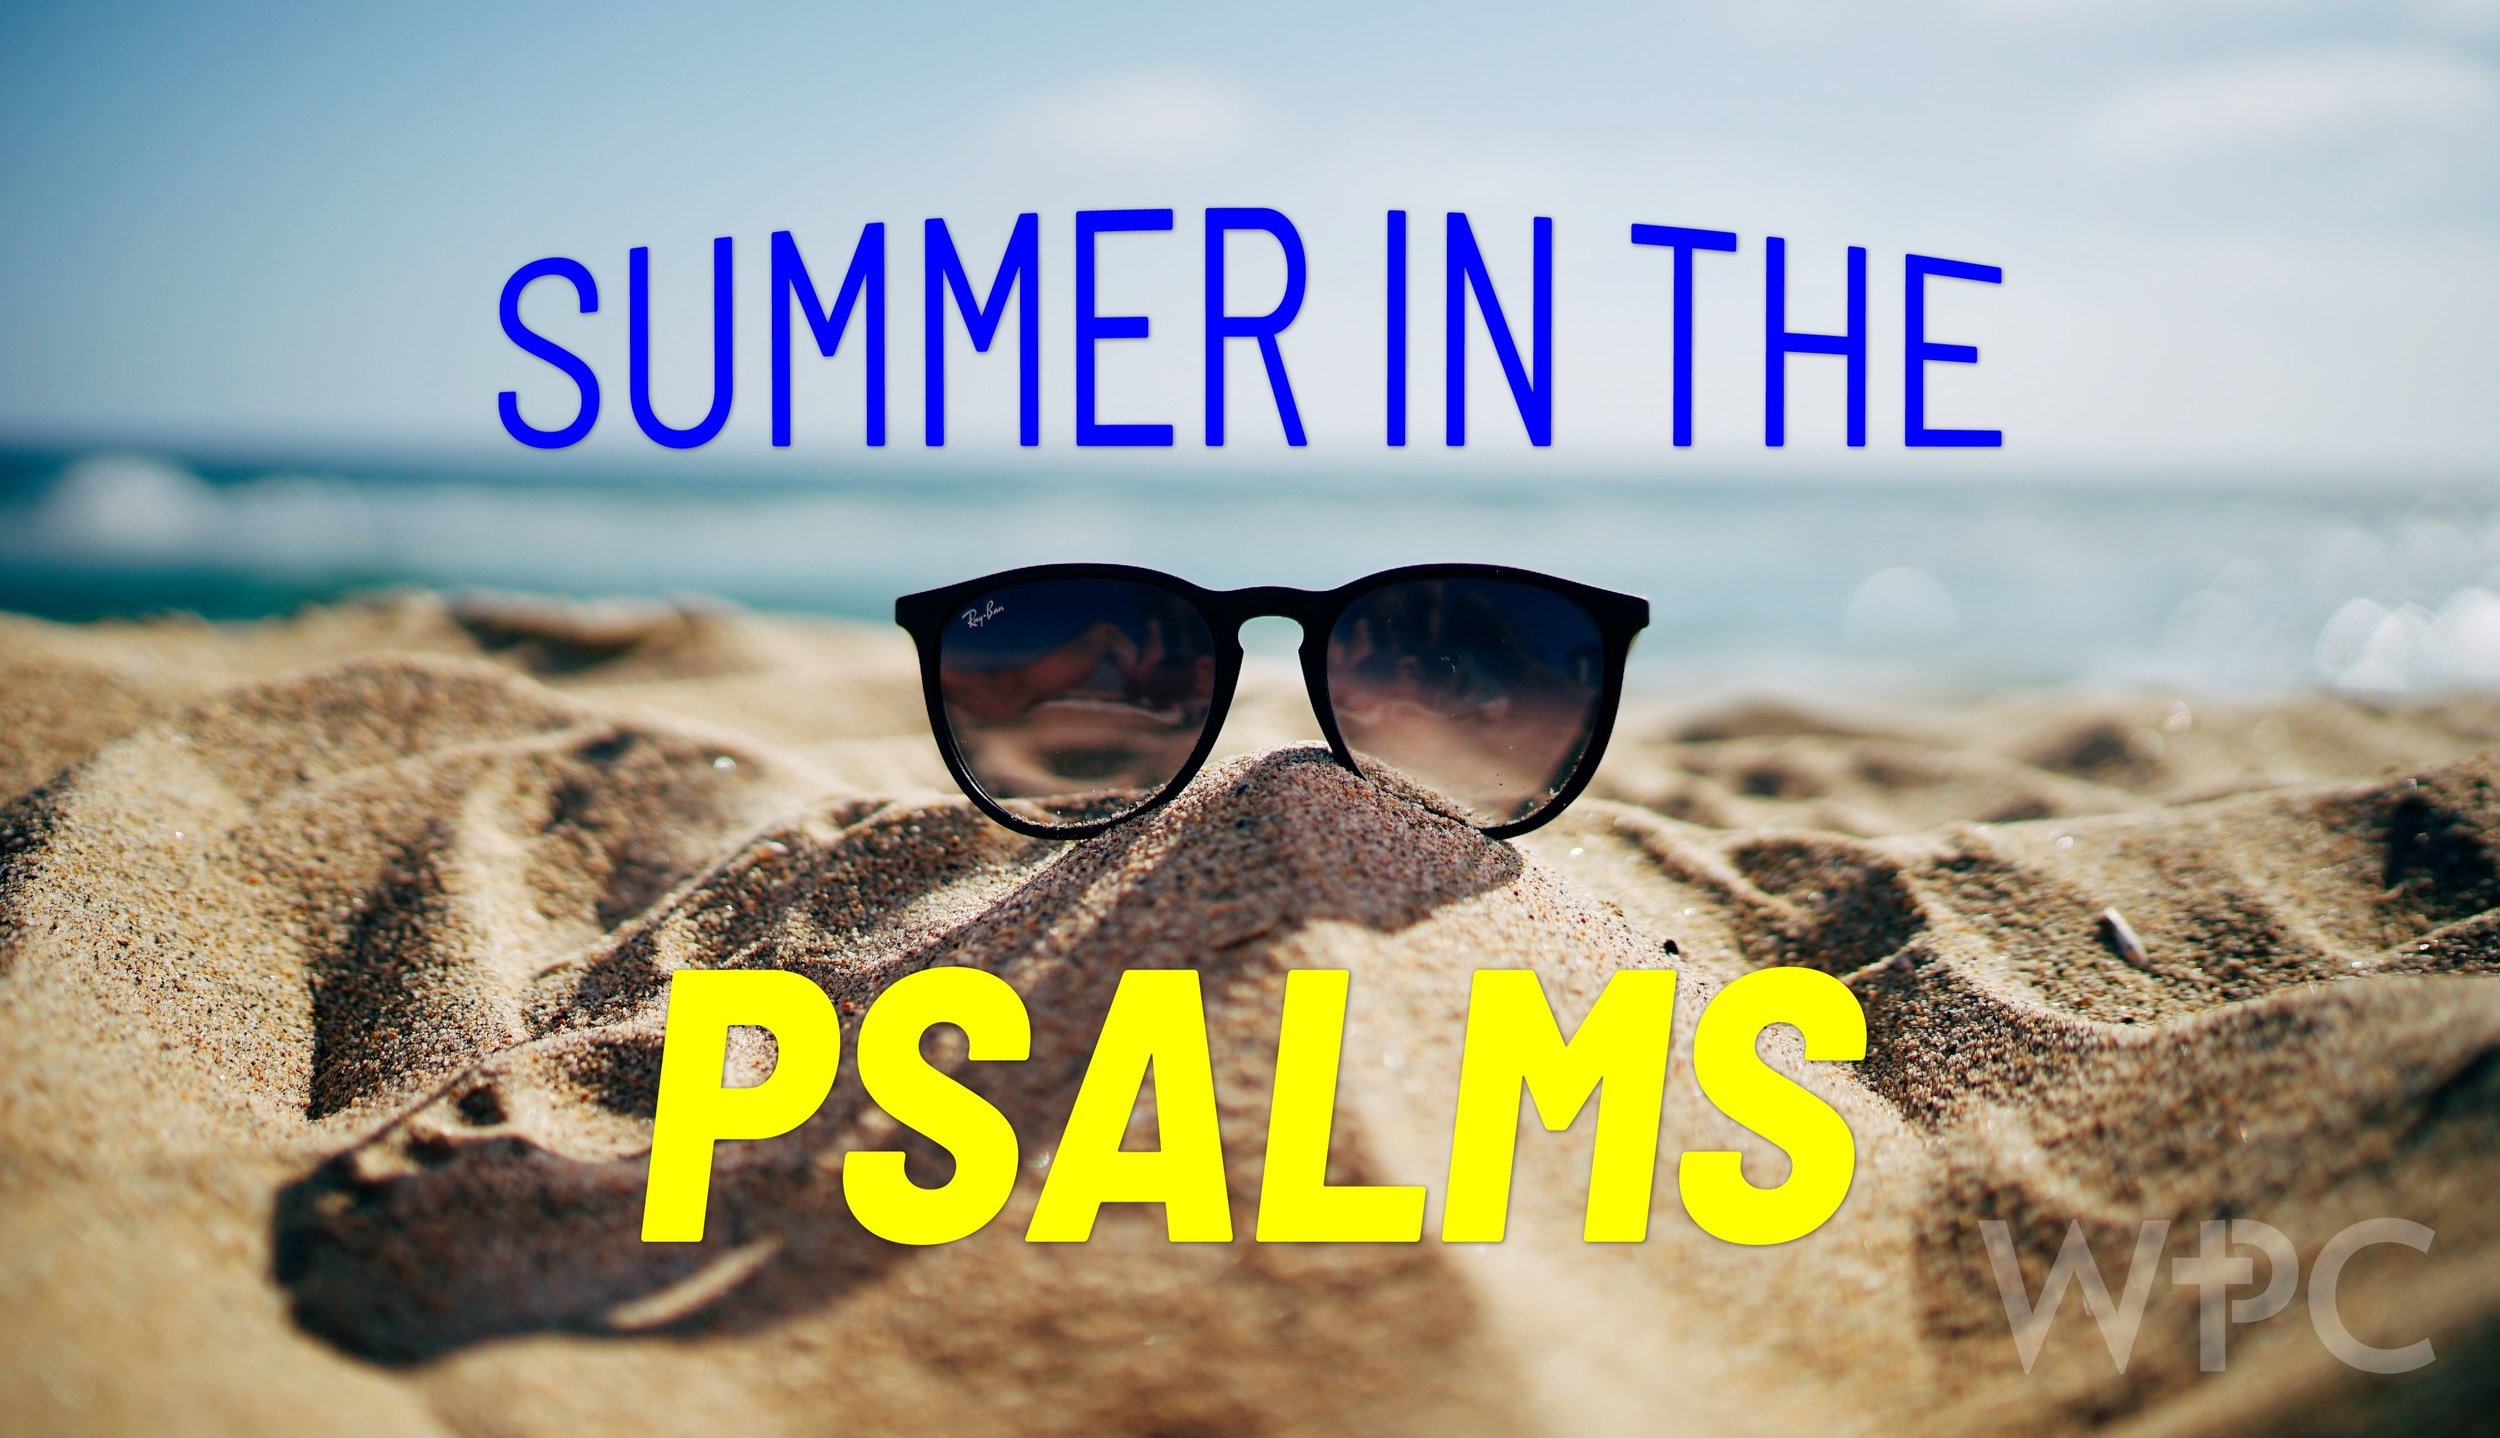 summer psalms - RESIZE3.jpeg